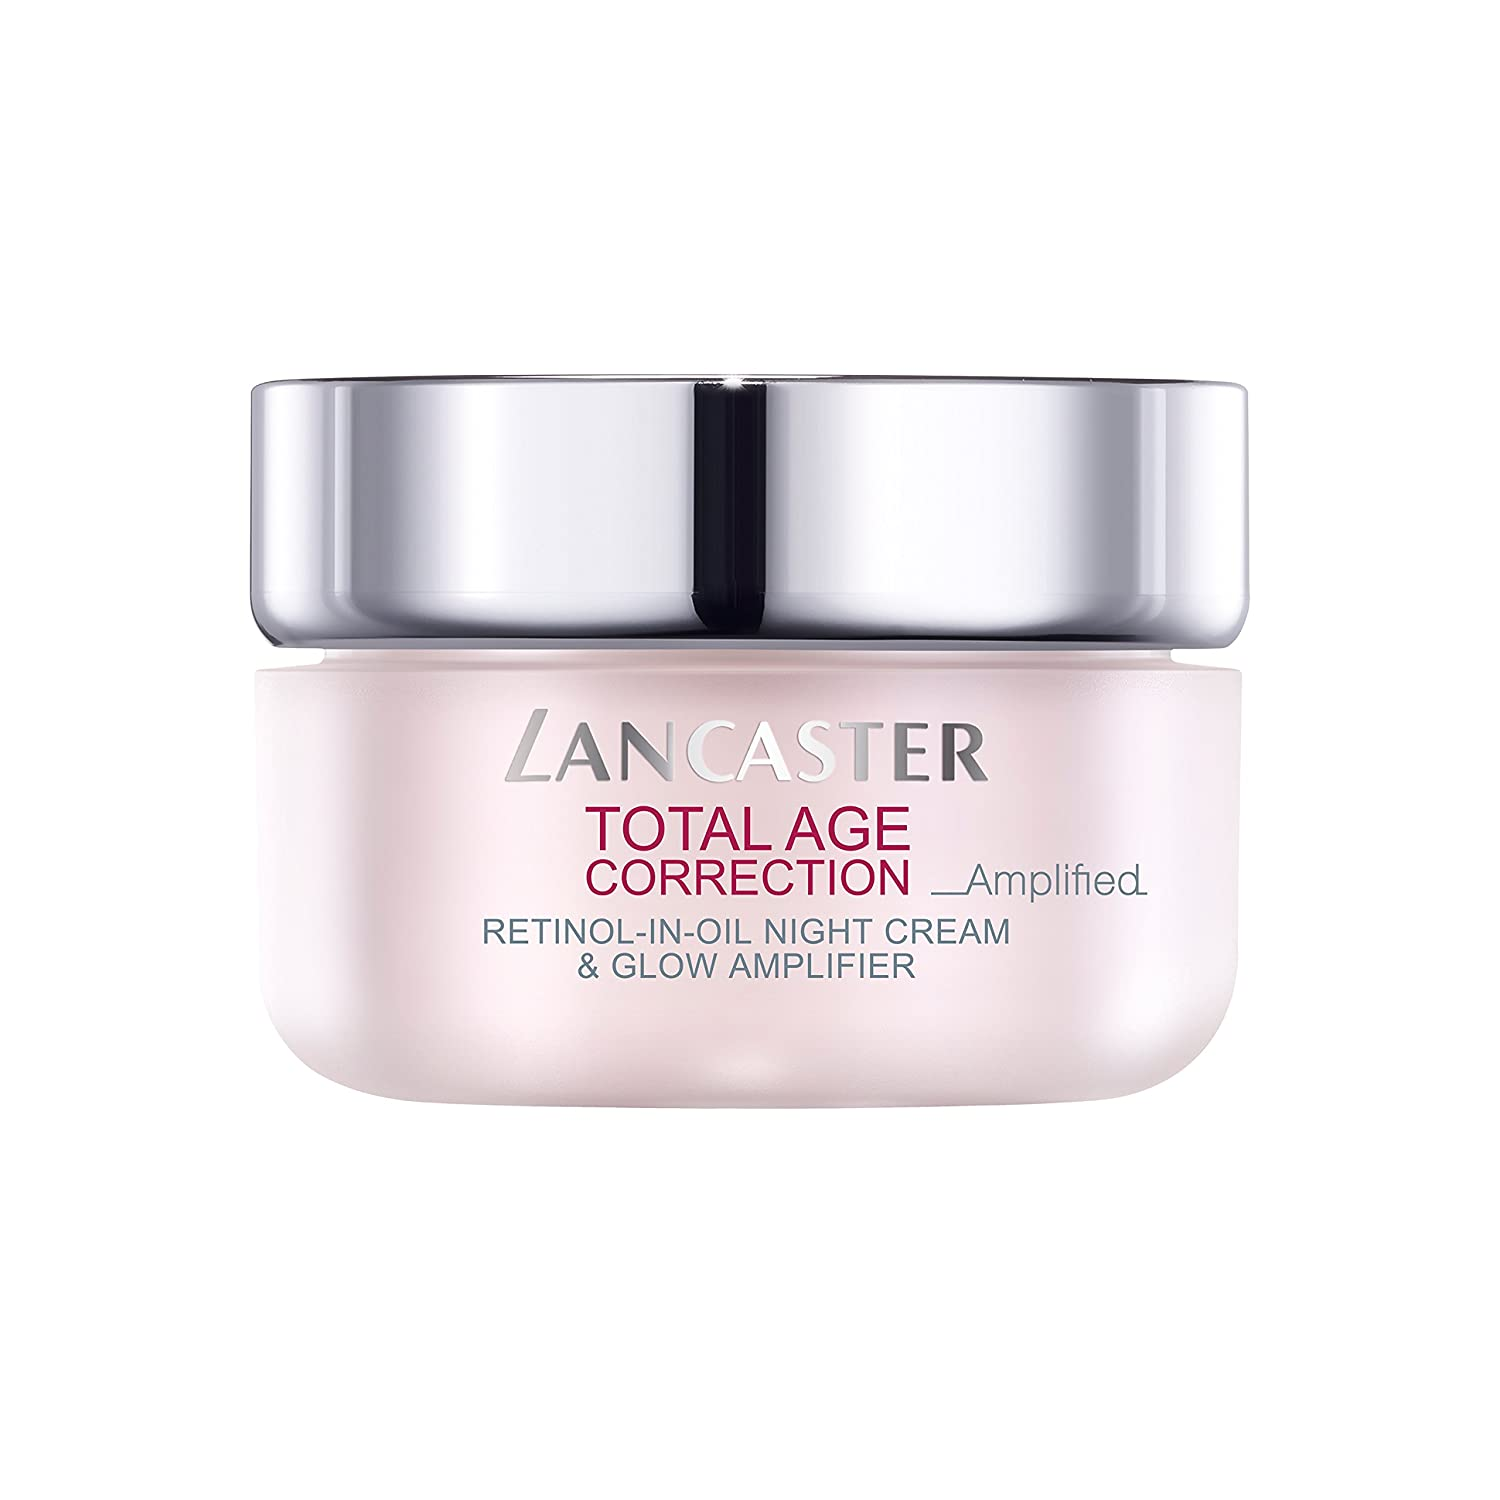 Lancaster Total Age Correction Amplified Retinol-in-Oil Night Cream and Glow Amplifier, 50 ml Coty 40661021000